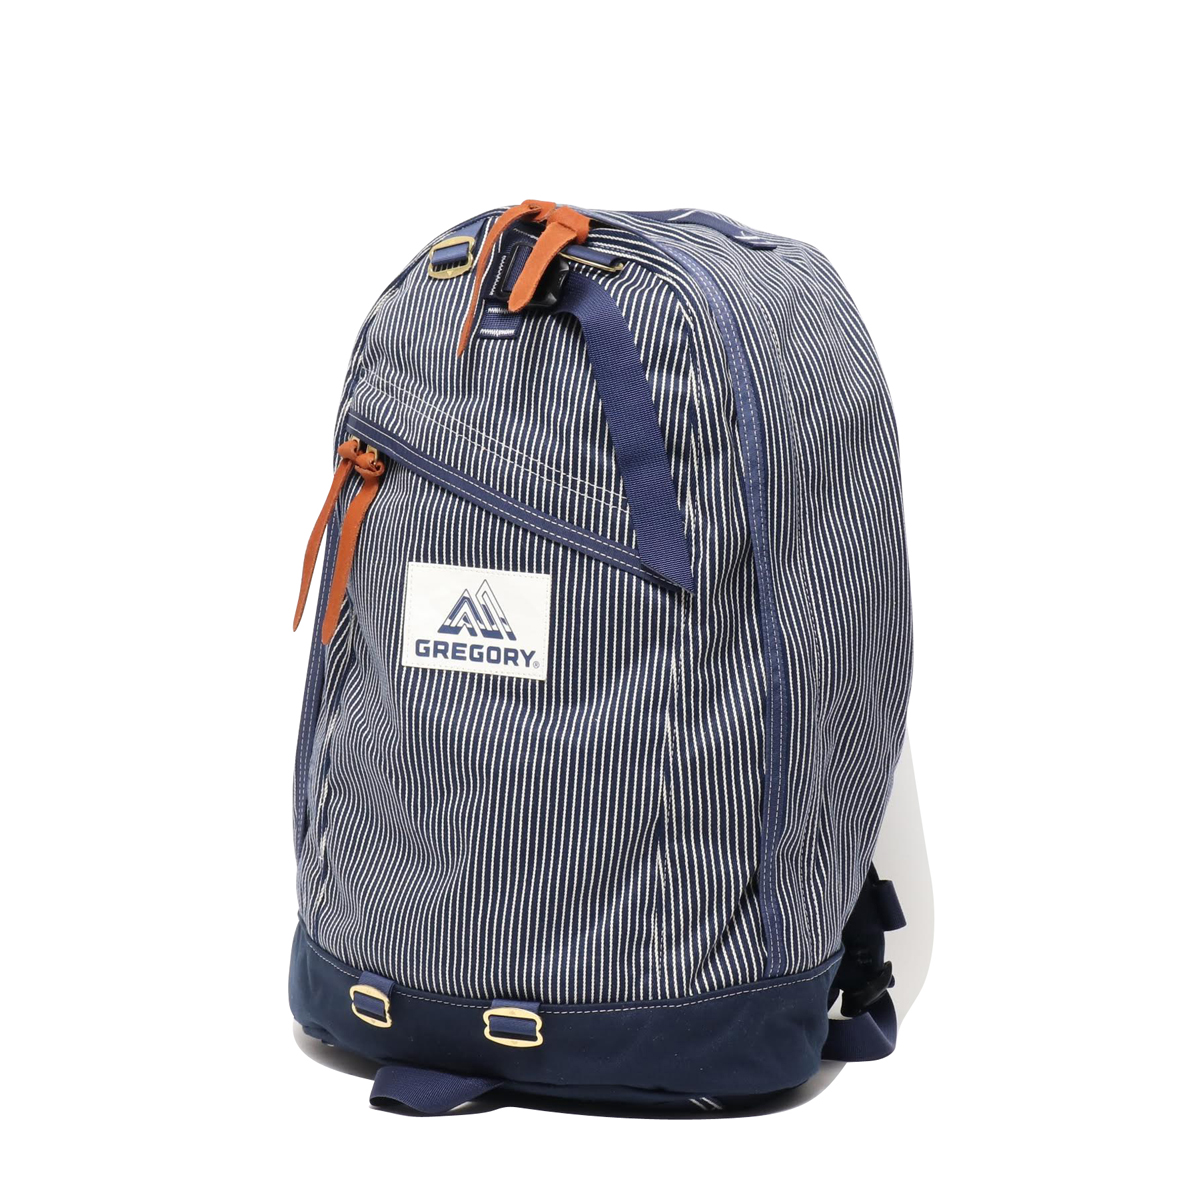 a13e706b66a9 GREGORY DAY PACK (グレゴリー デイ パック)HICKORY STRIPE【メンズ レディース バッグパック】